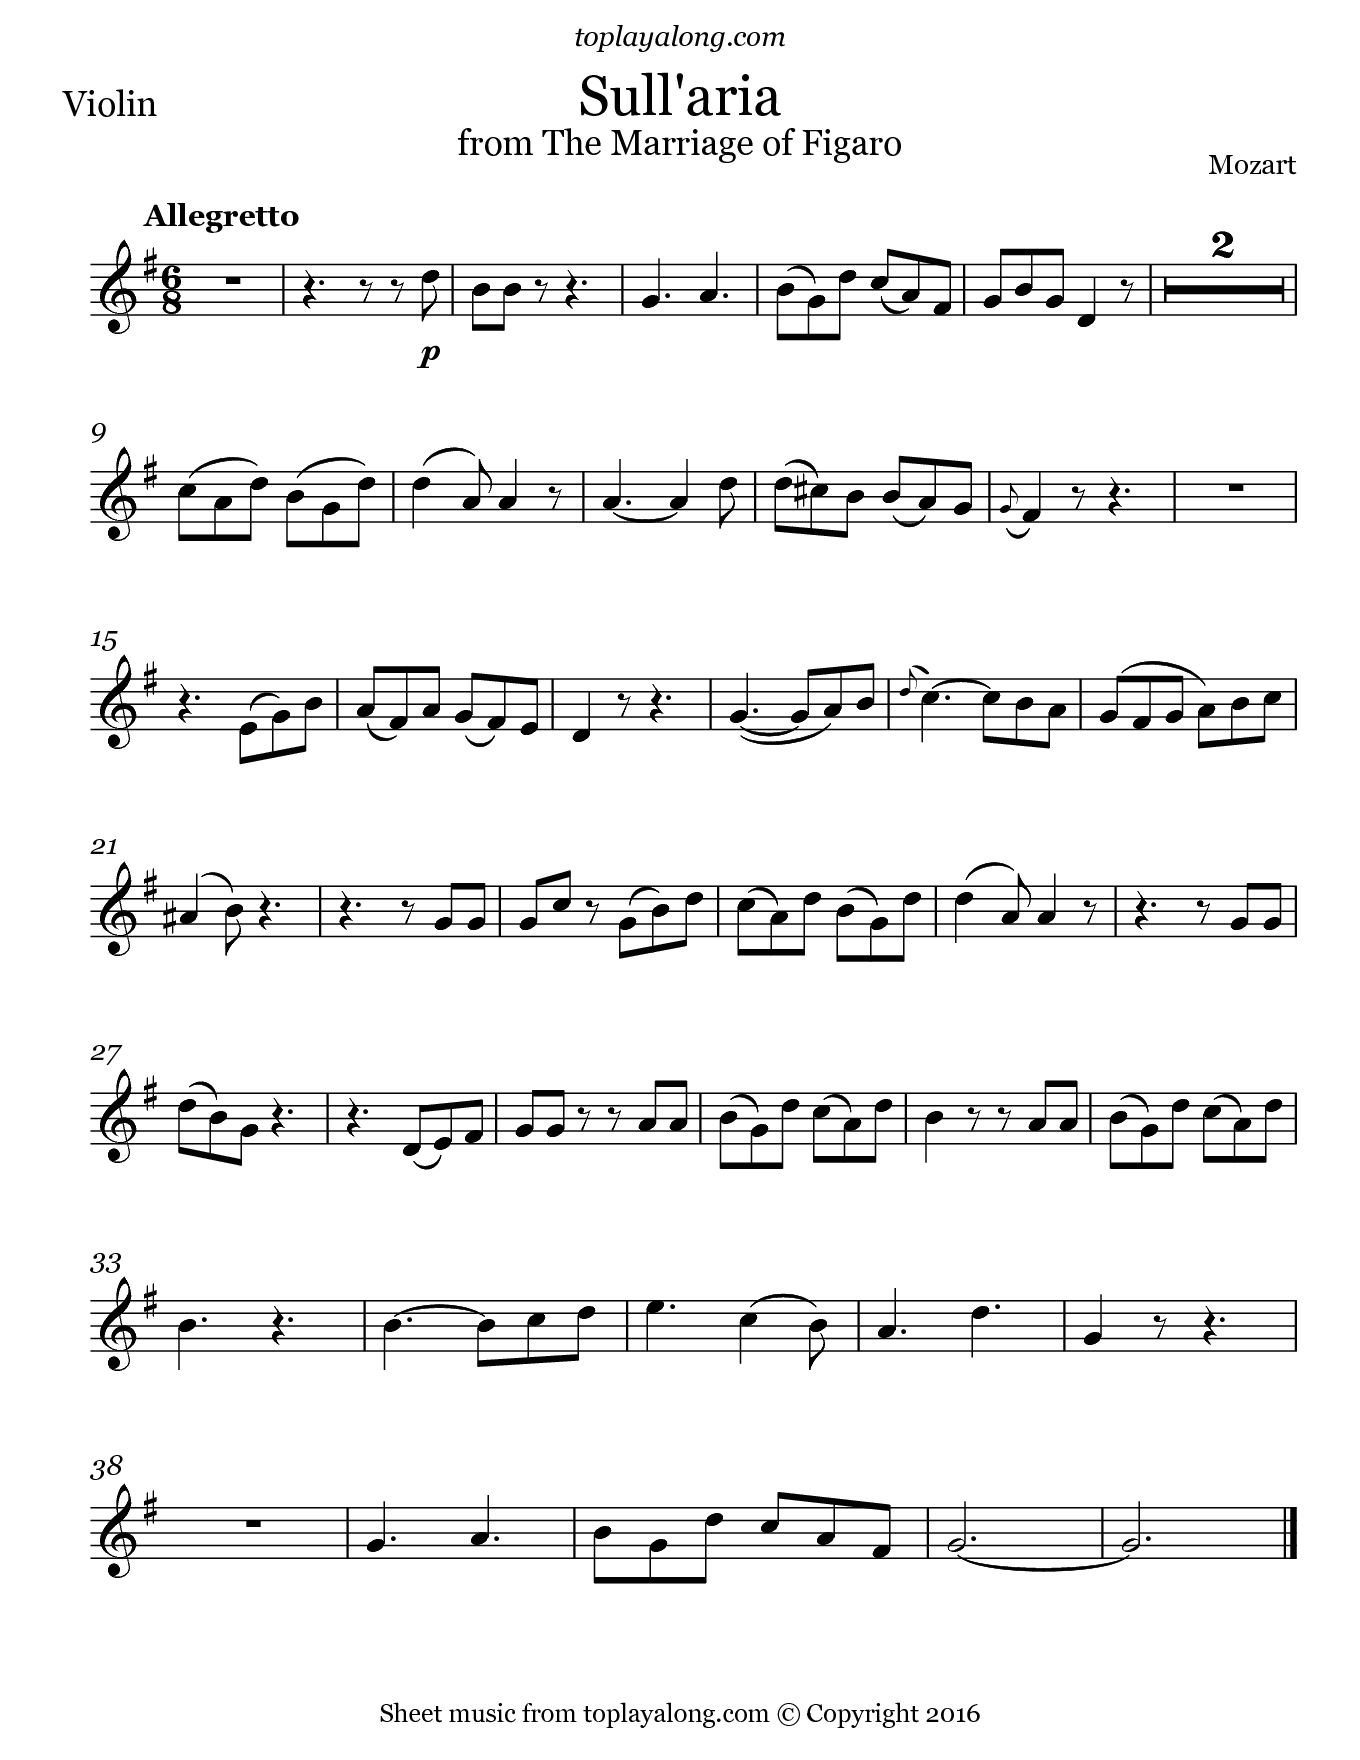 Sull'aria from The Marriage of Figaro by Mozart. Sheet music for Violin, page 1.